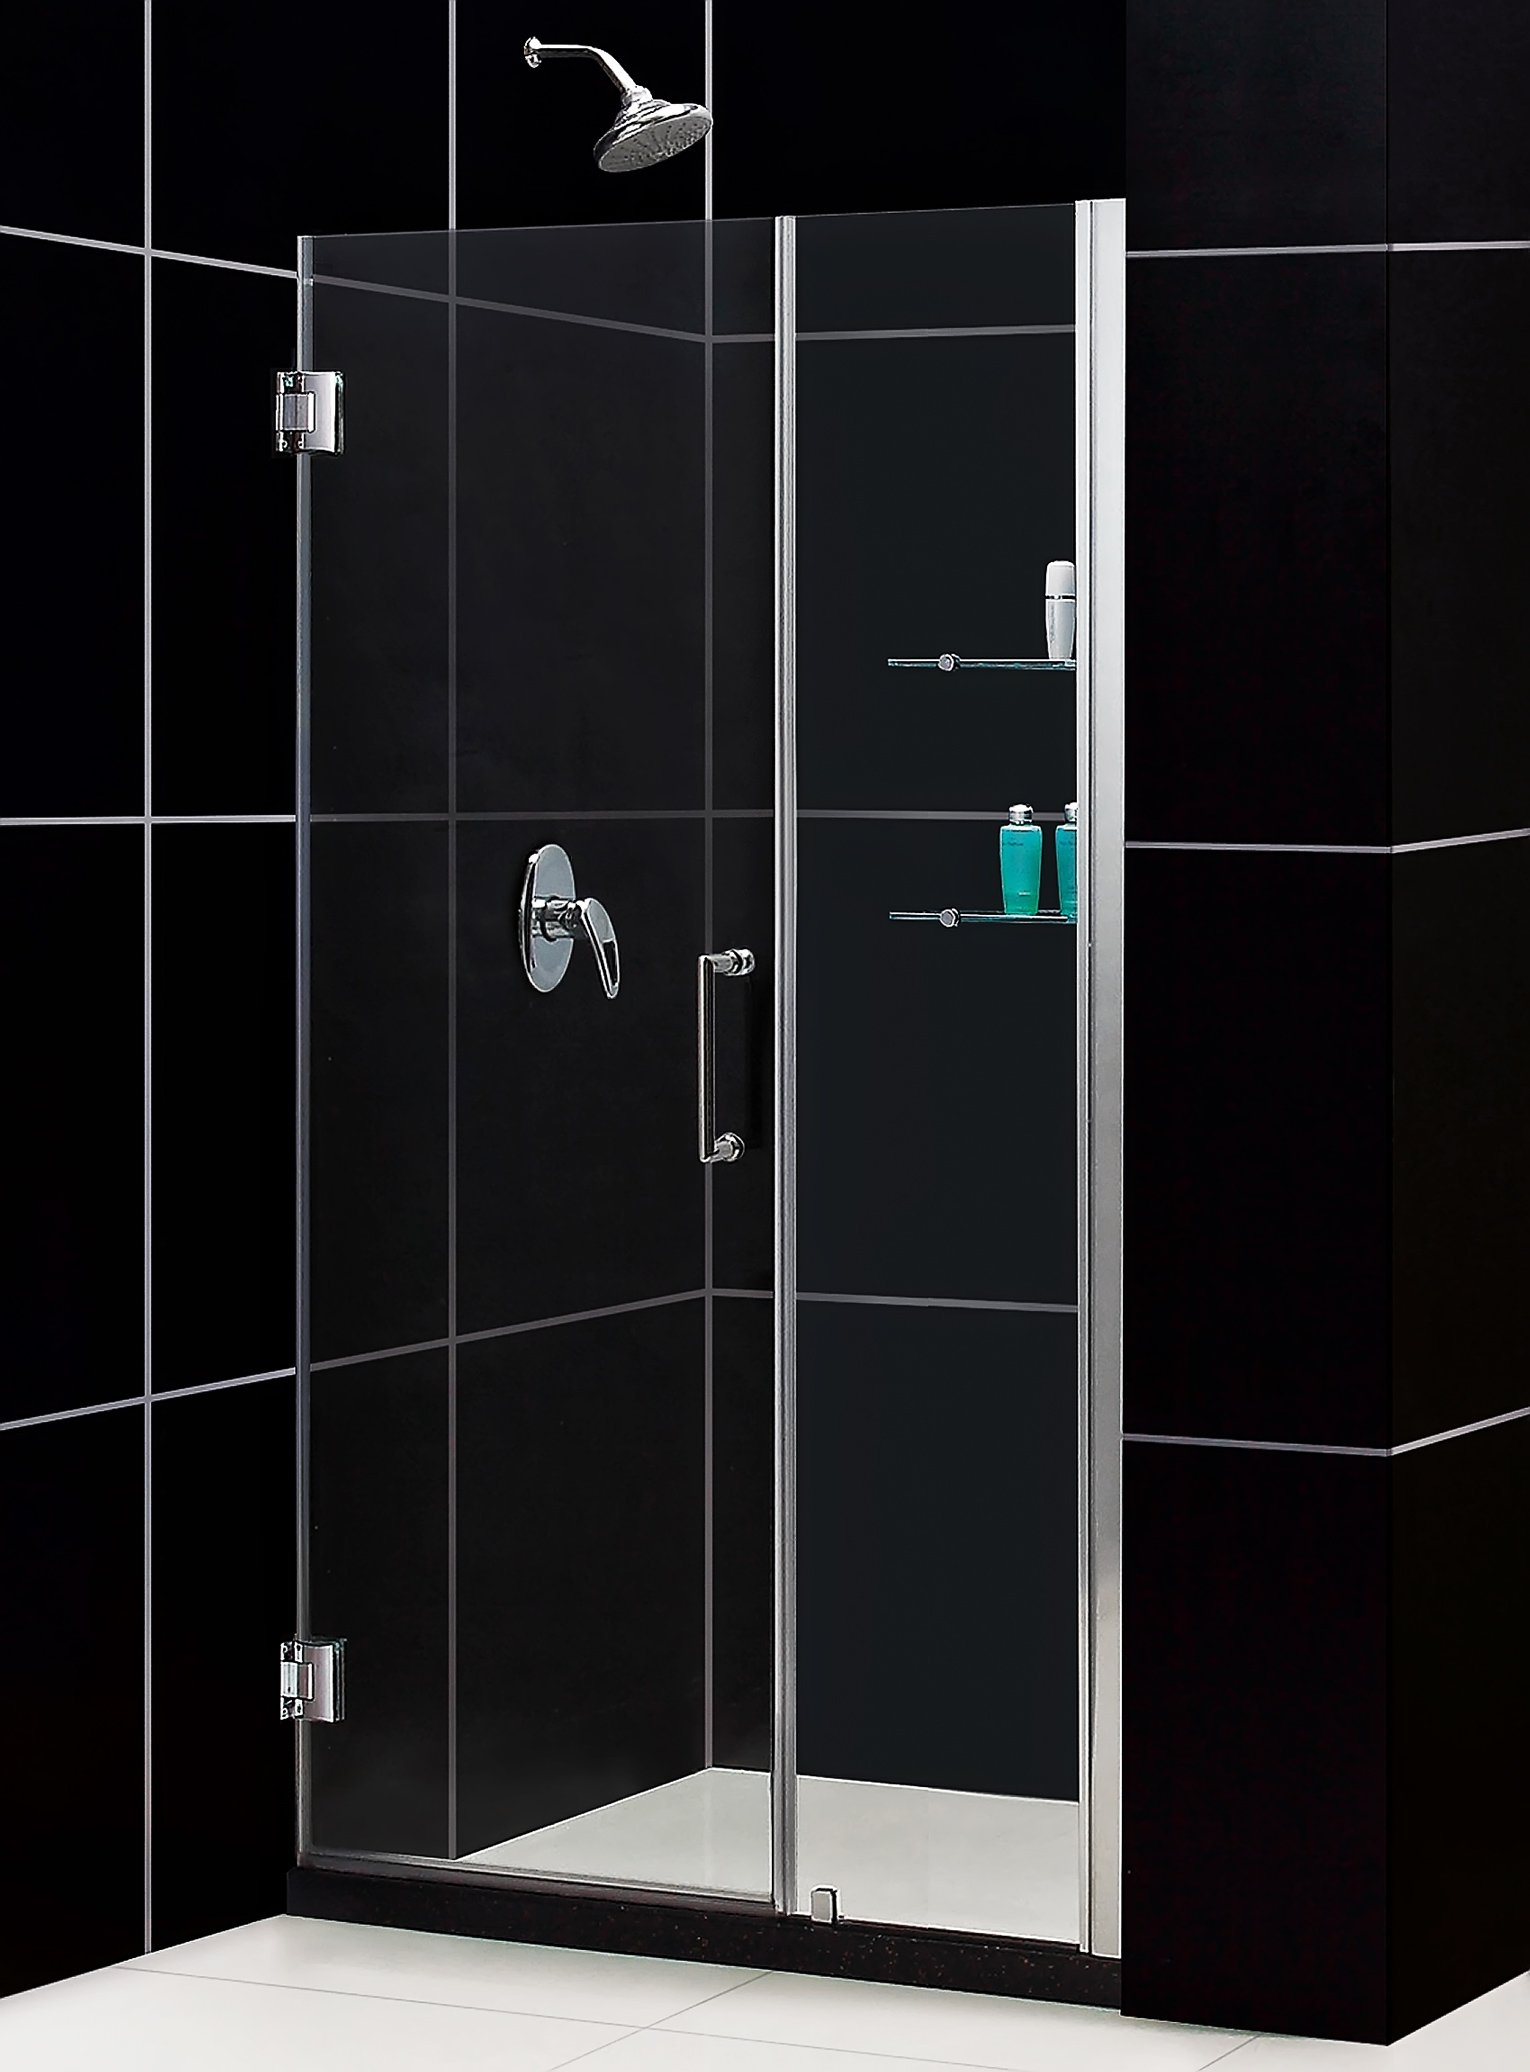 DreamLine Unidoor 47-48 in. Width, Frameless Hinged Shower Door, 3/8'' Glass, Chrome Finish by DreamLine